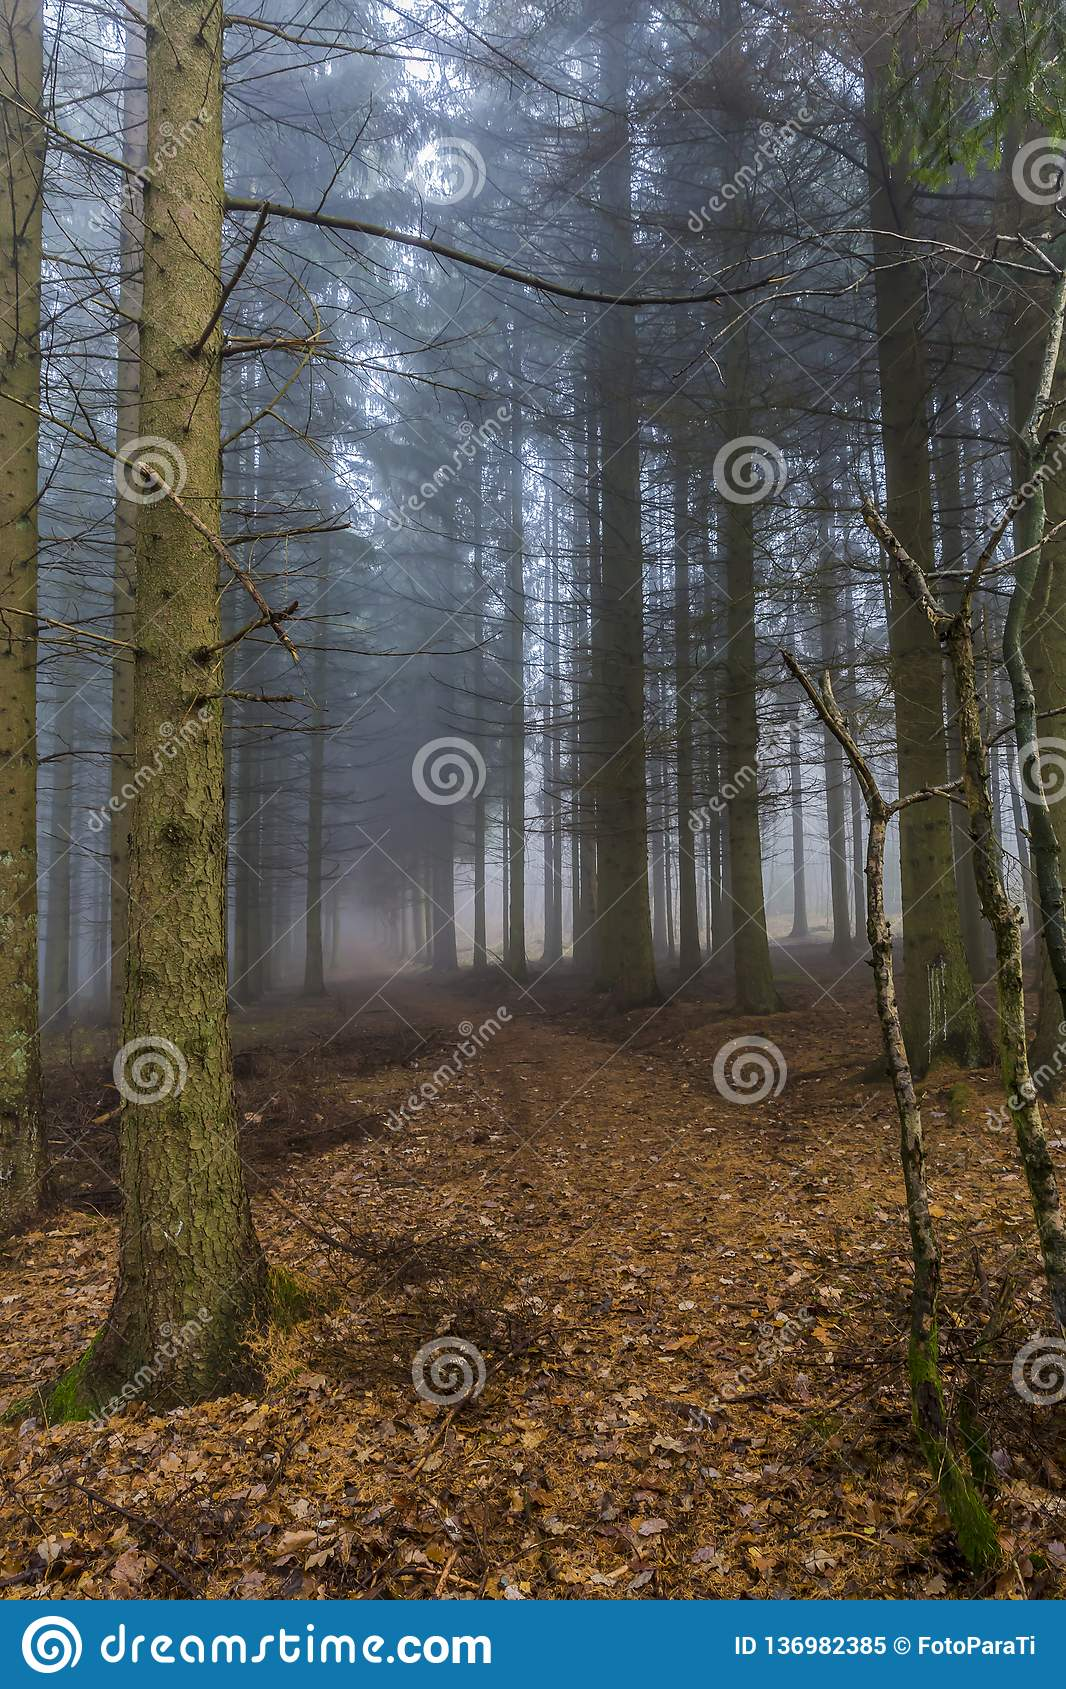 Beautiful image of a trail in the forest covered in dry leaves among tall pine trees